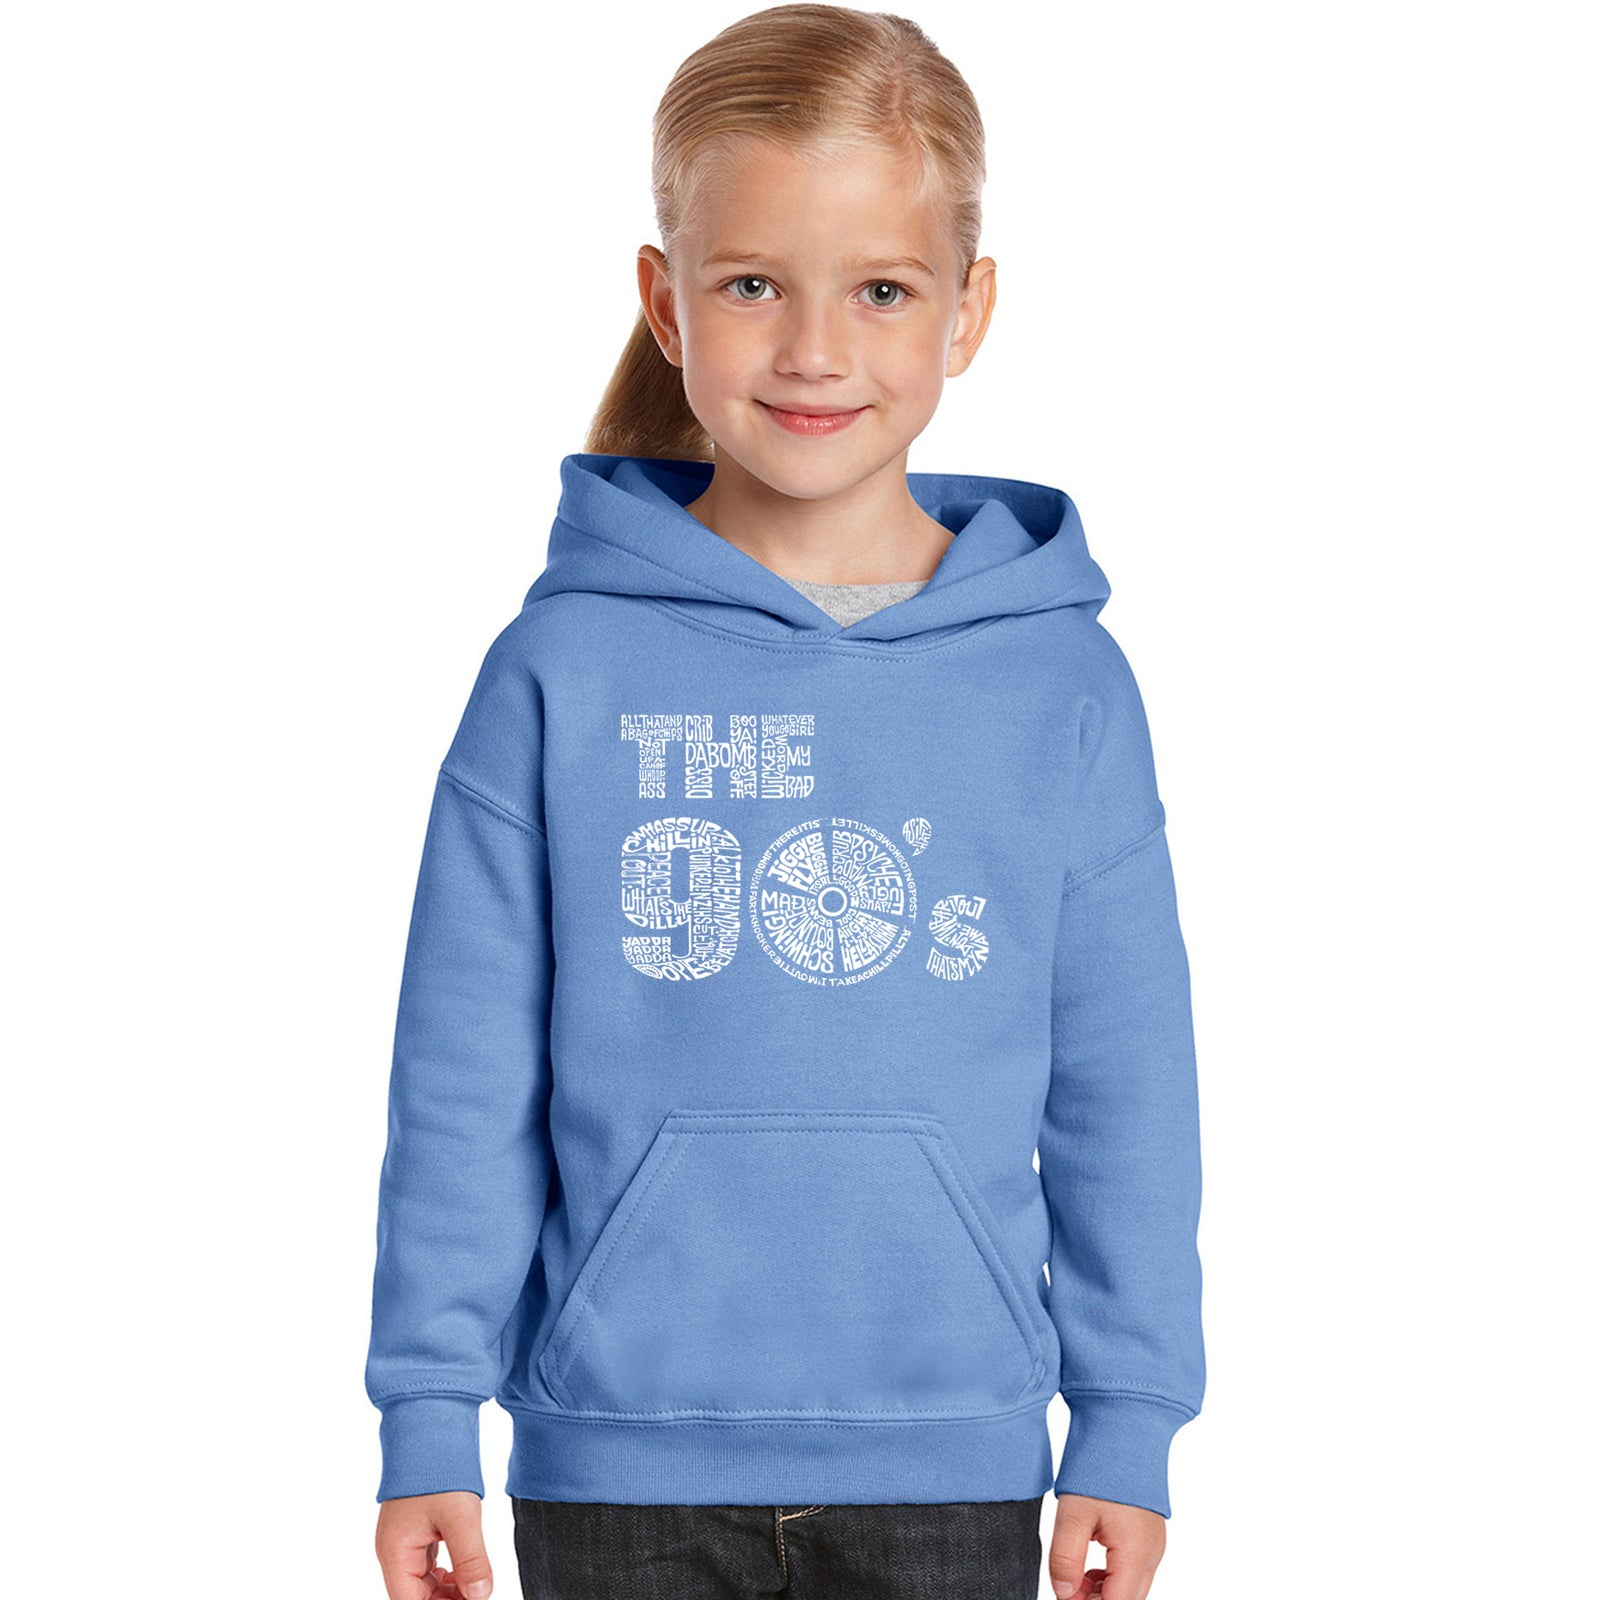 Girl's Word Art Hooded Sweatshirt - 90S